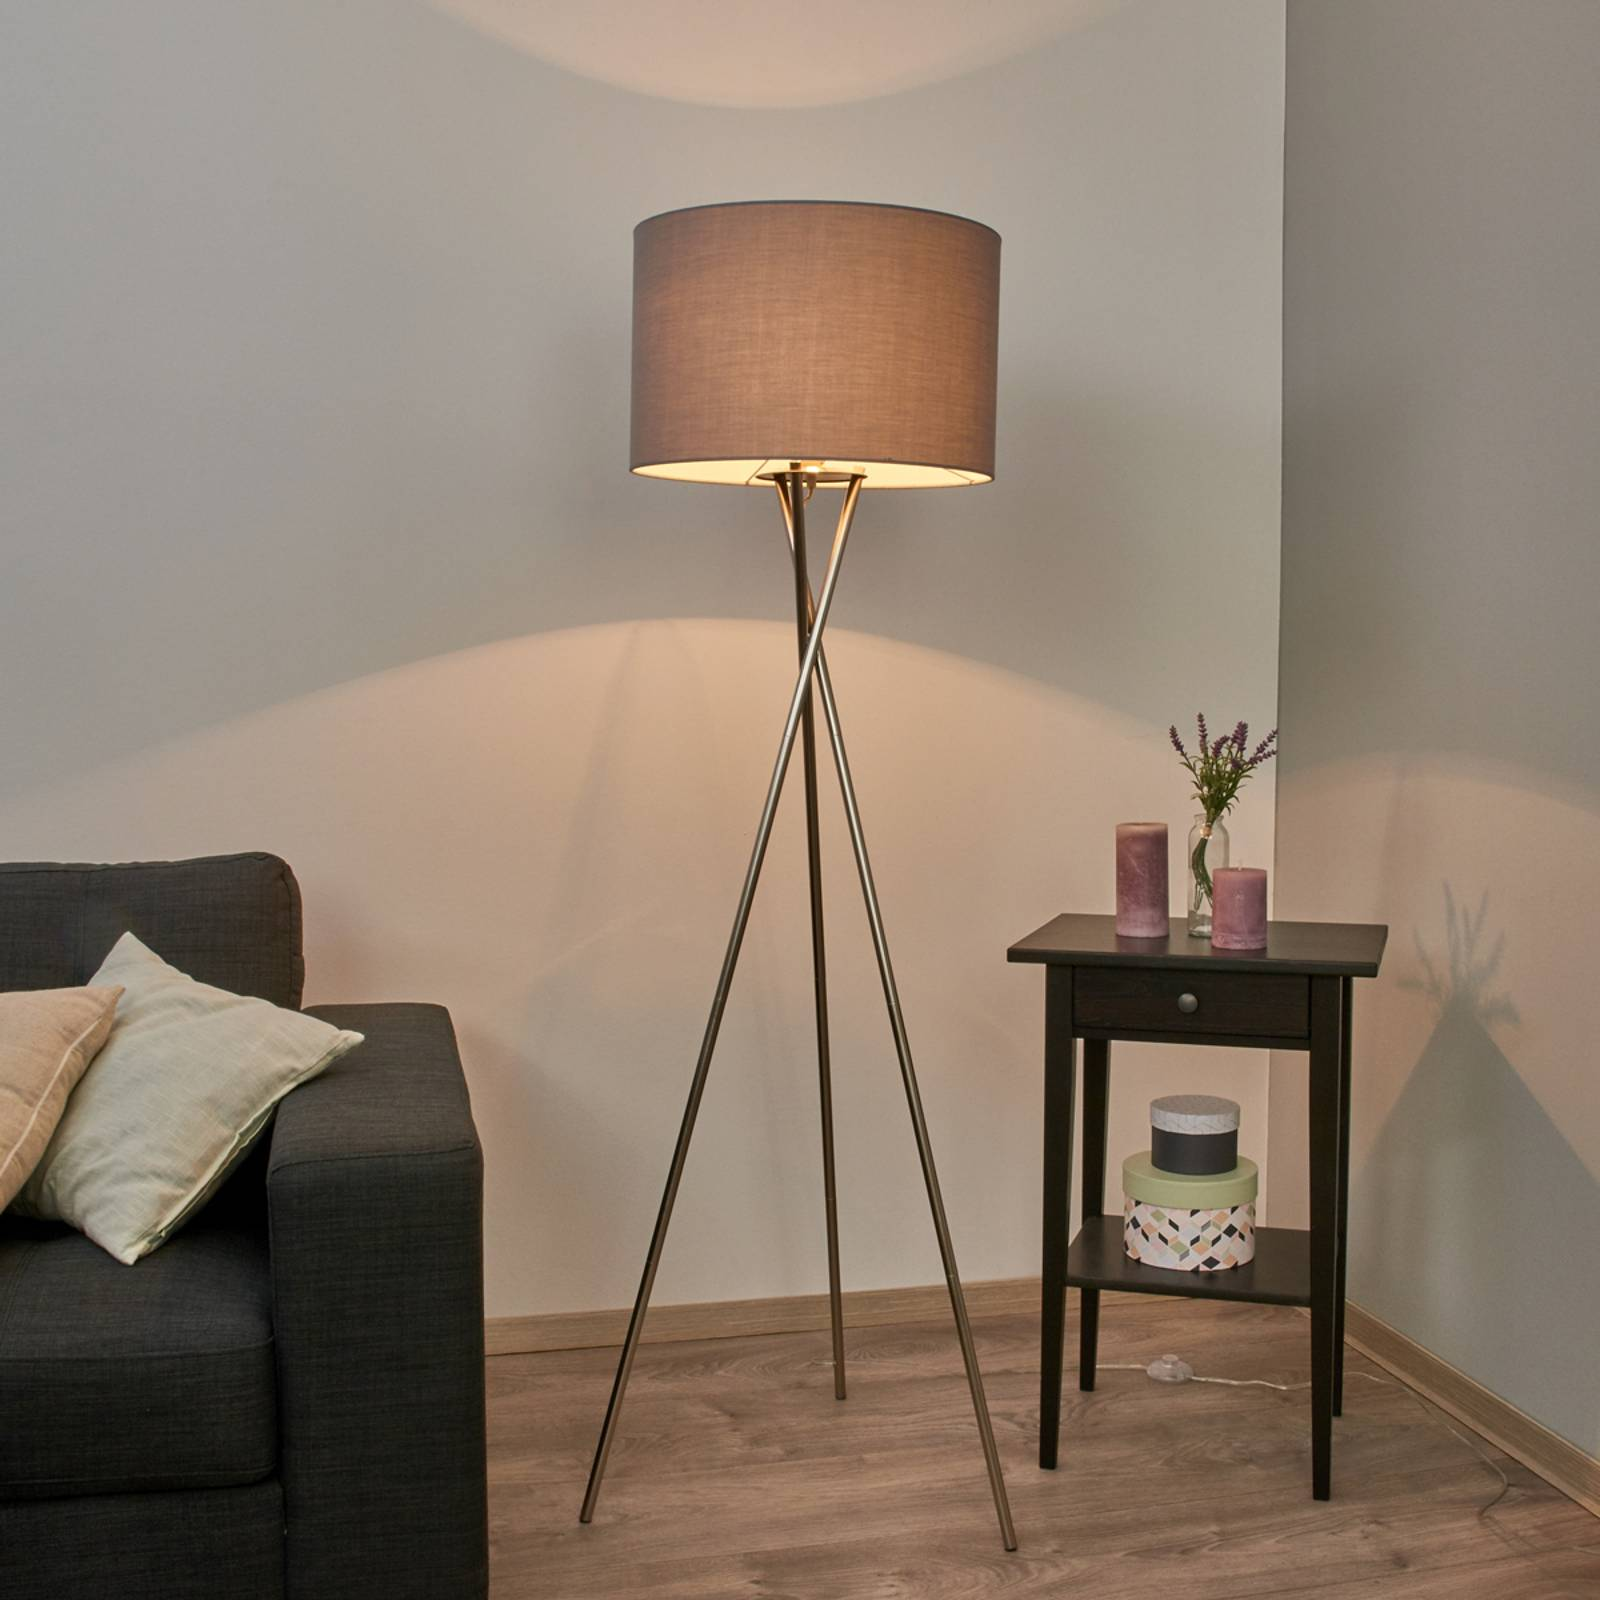 Tripod floor lamp with grey lampshade from Lindby